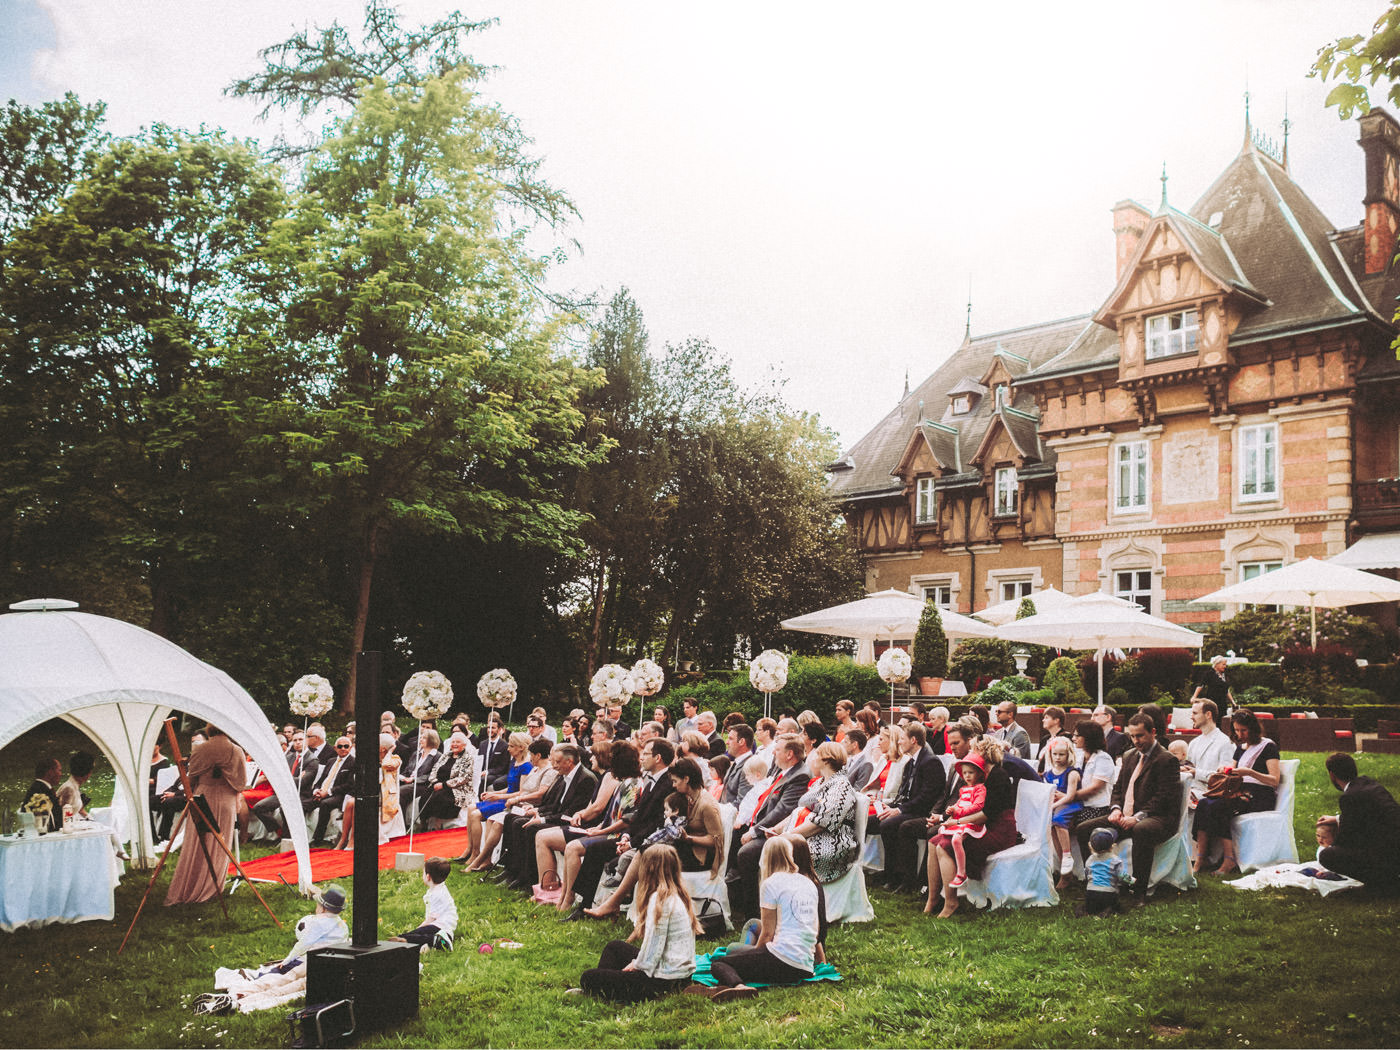 Wedding at Villa Rothschild, Königstein, Frankfurt - outdoor wedding in the park and party in the bar